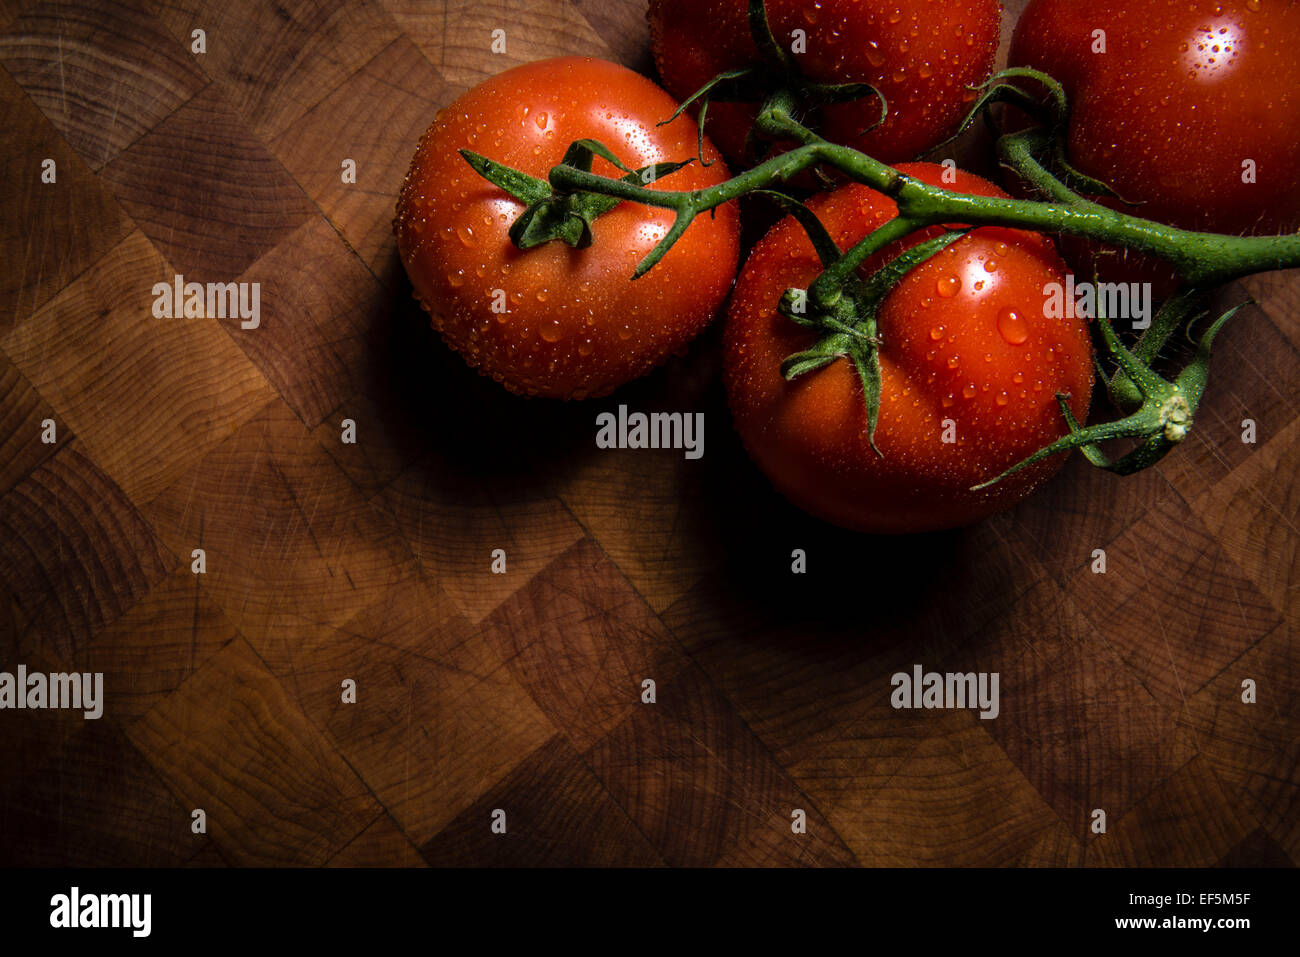 Wet tomatoes on a chopping board Photo Stock